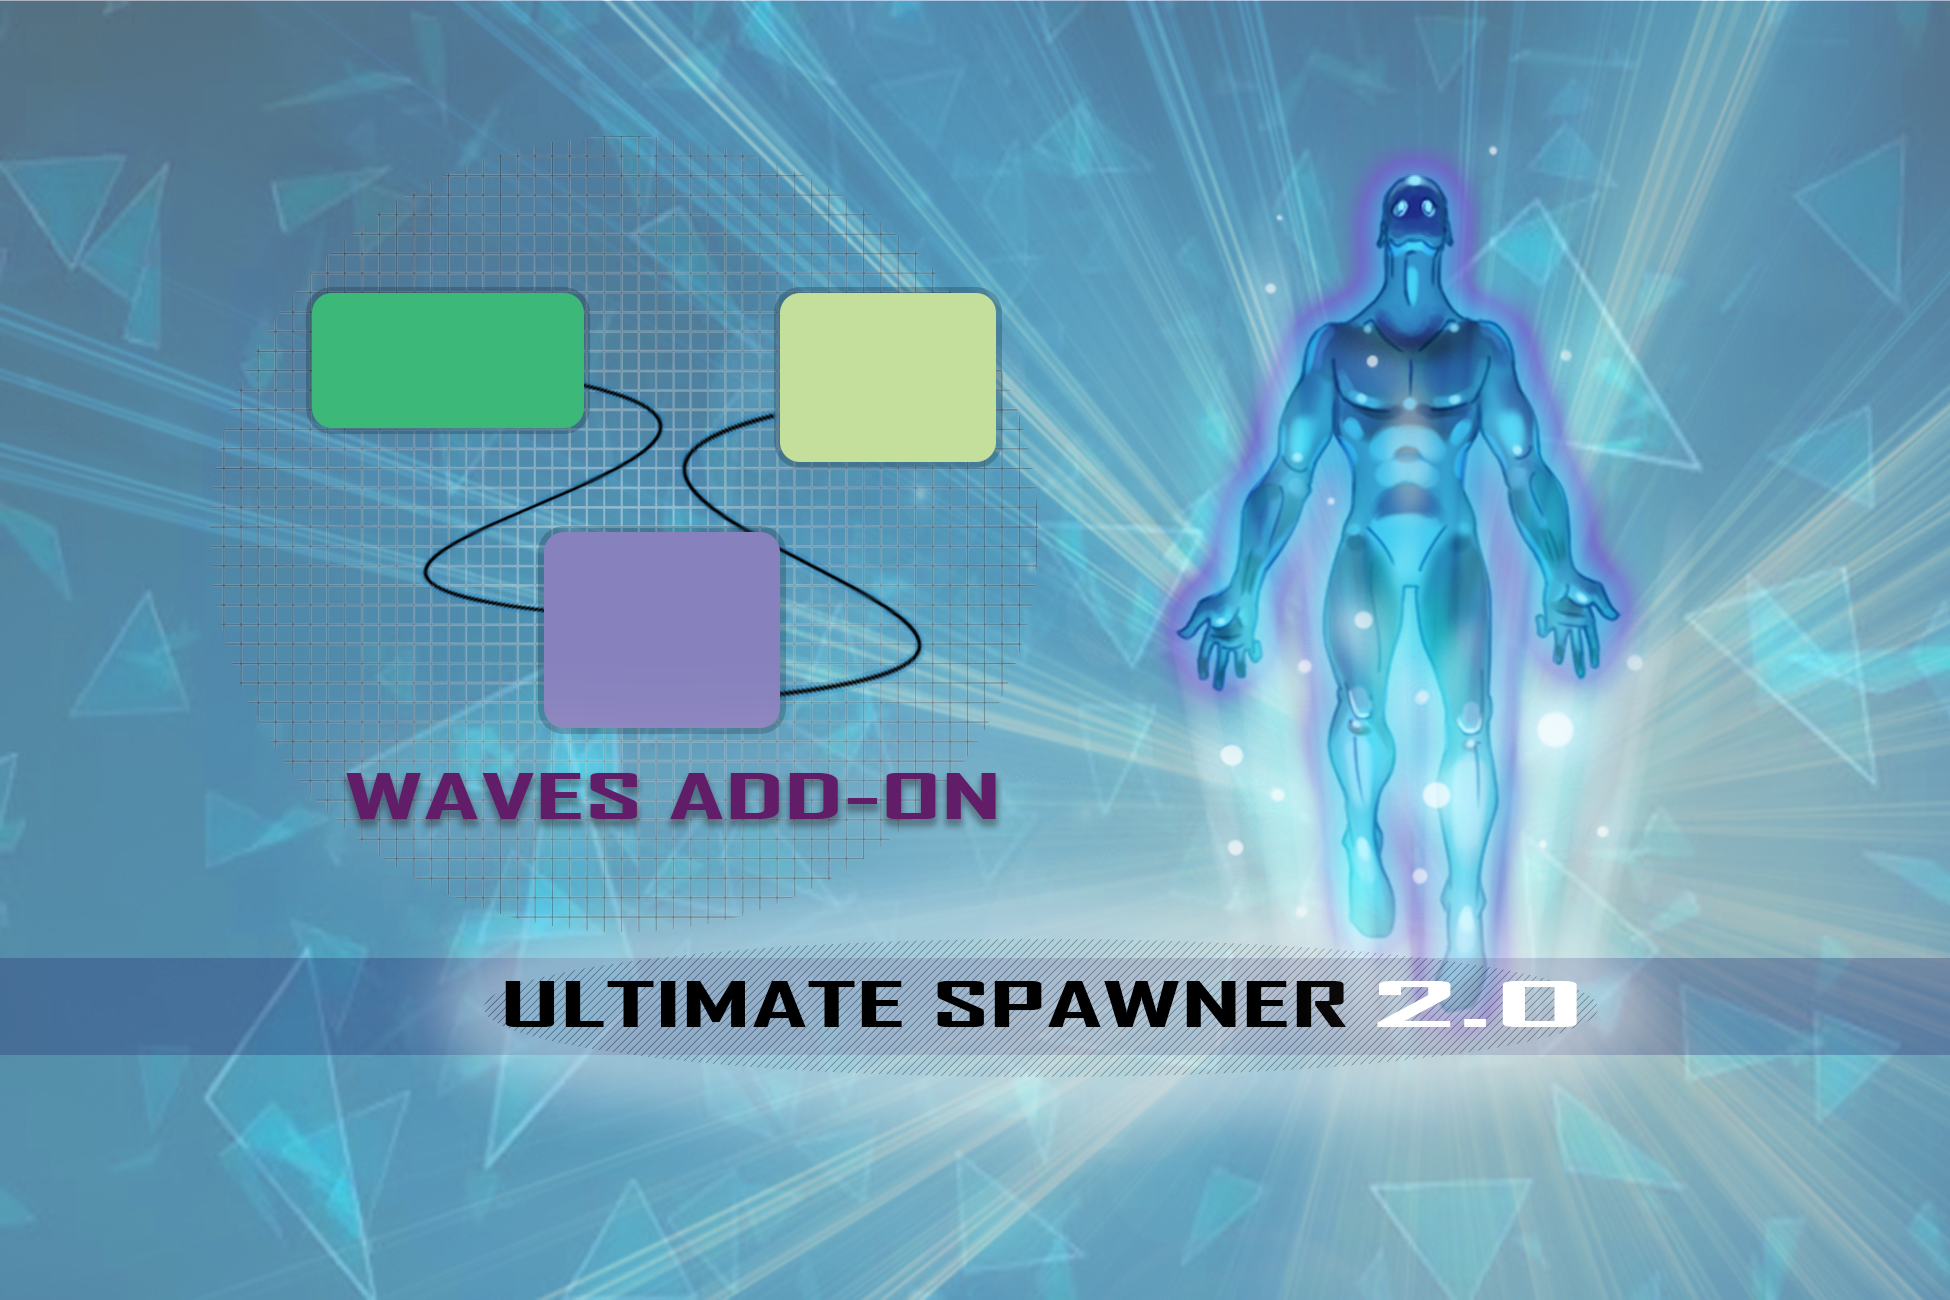 Waves-AddOn-Large.png